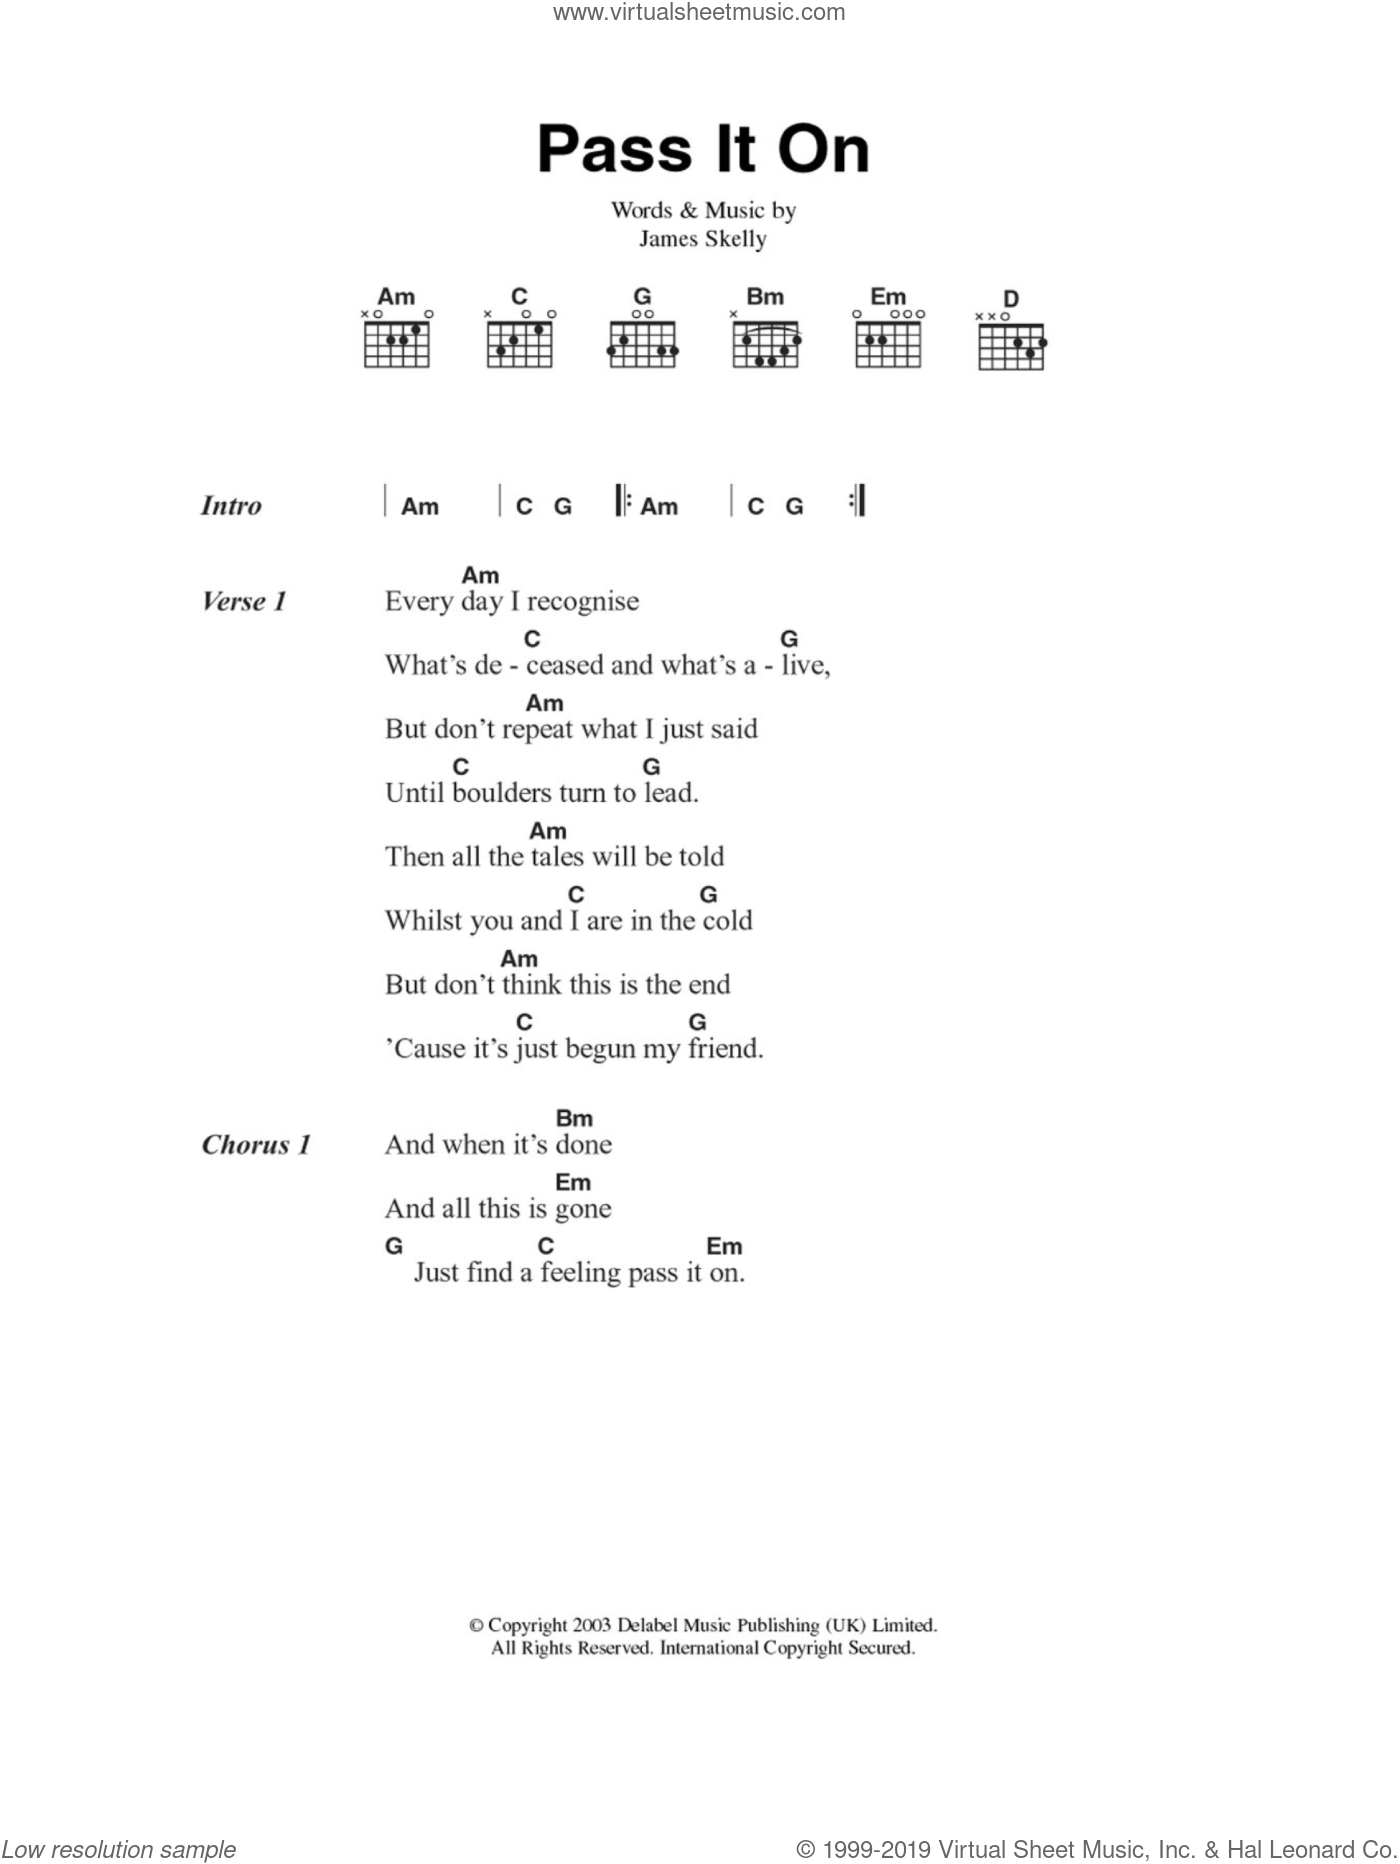 Pass It On sheet music for guitar (chords) by James Skelly